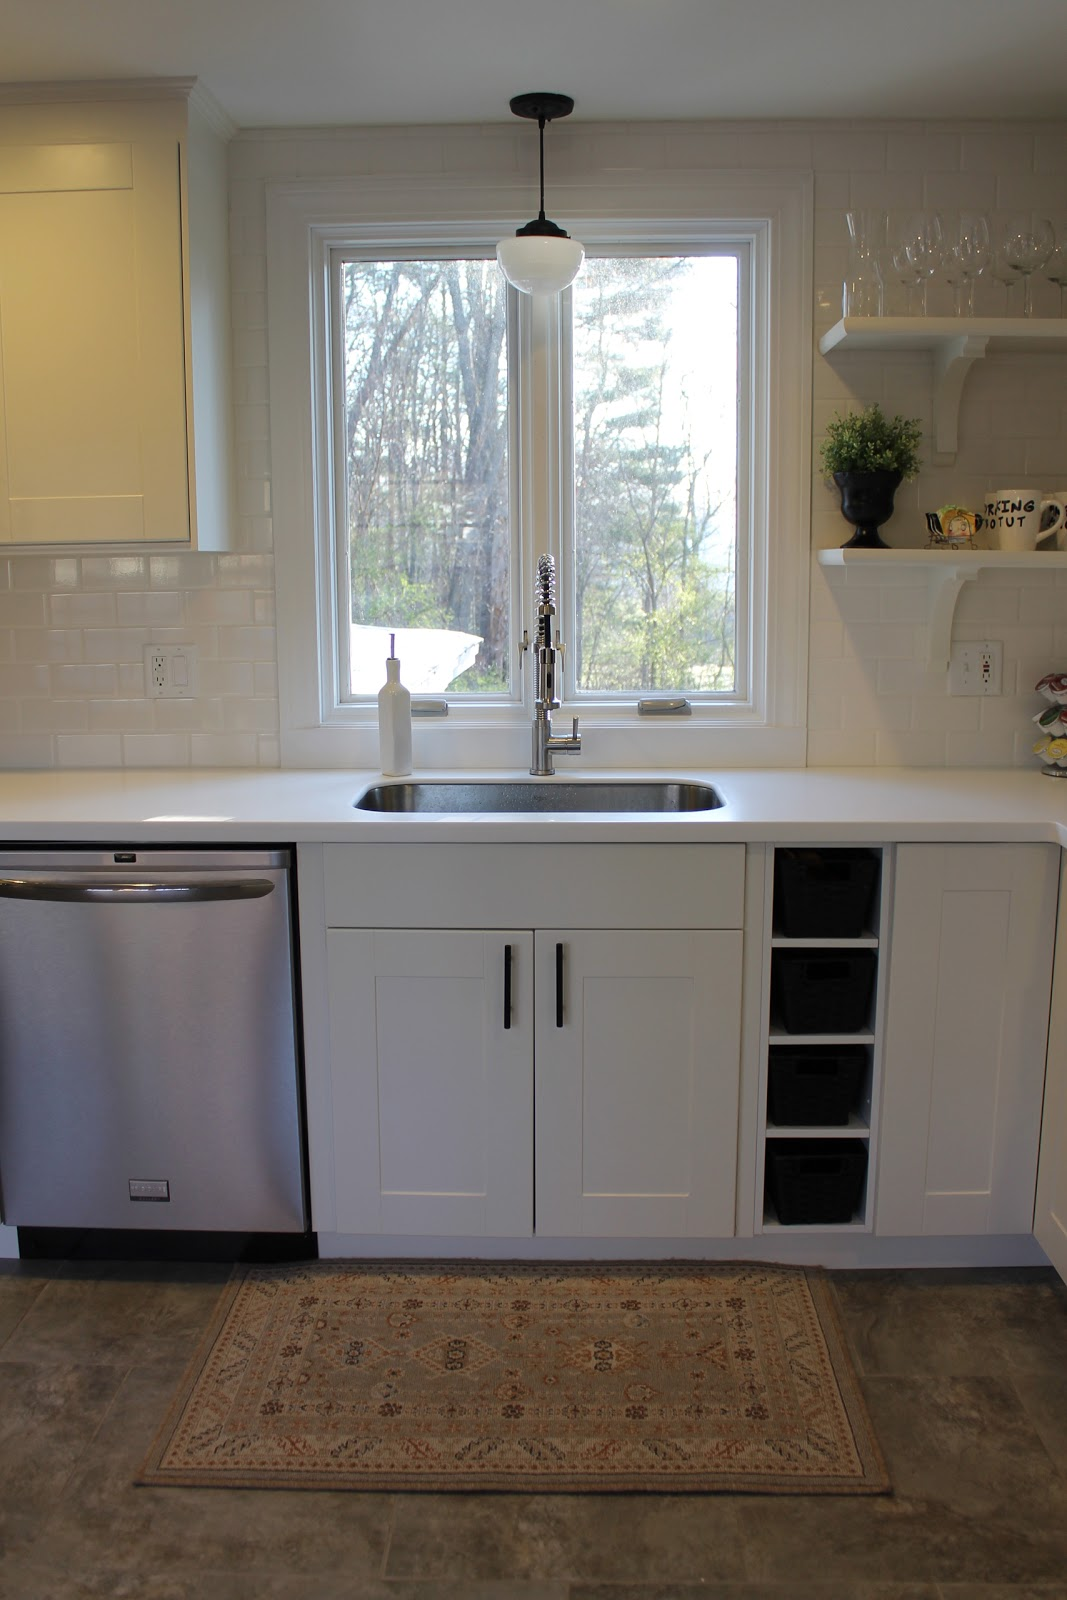 Lowe's Kitchen Sink Cabinets for Sale